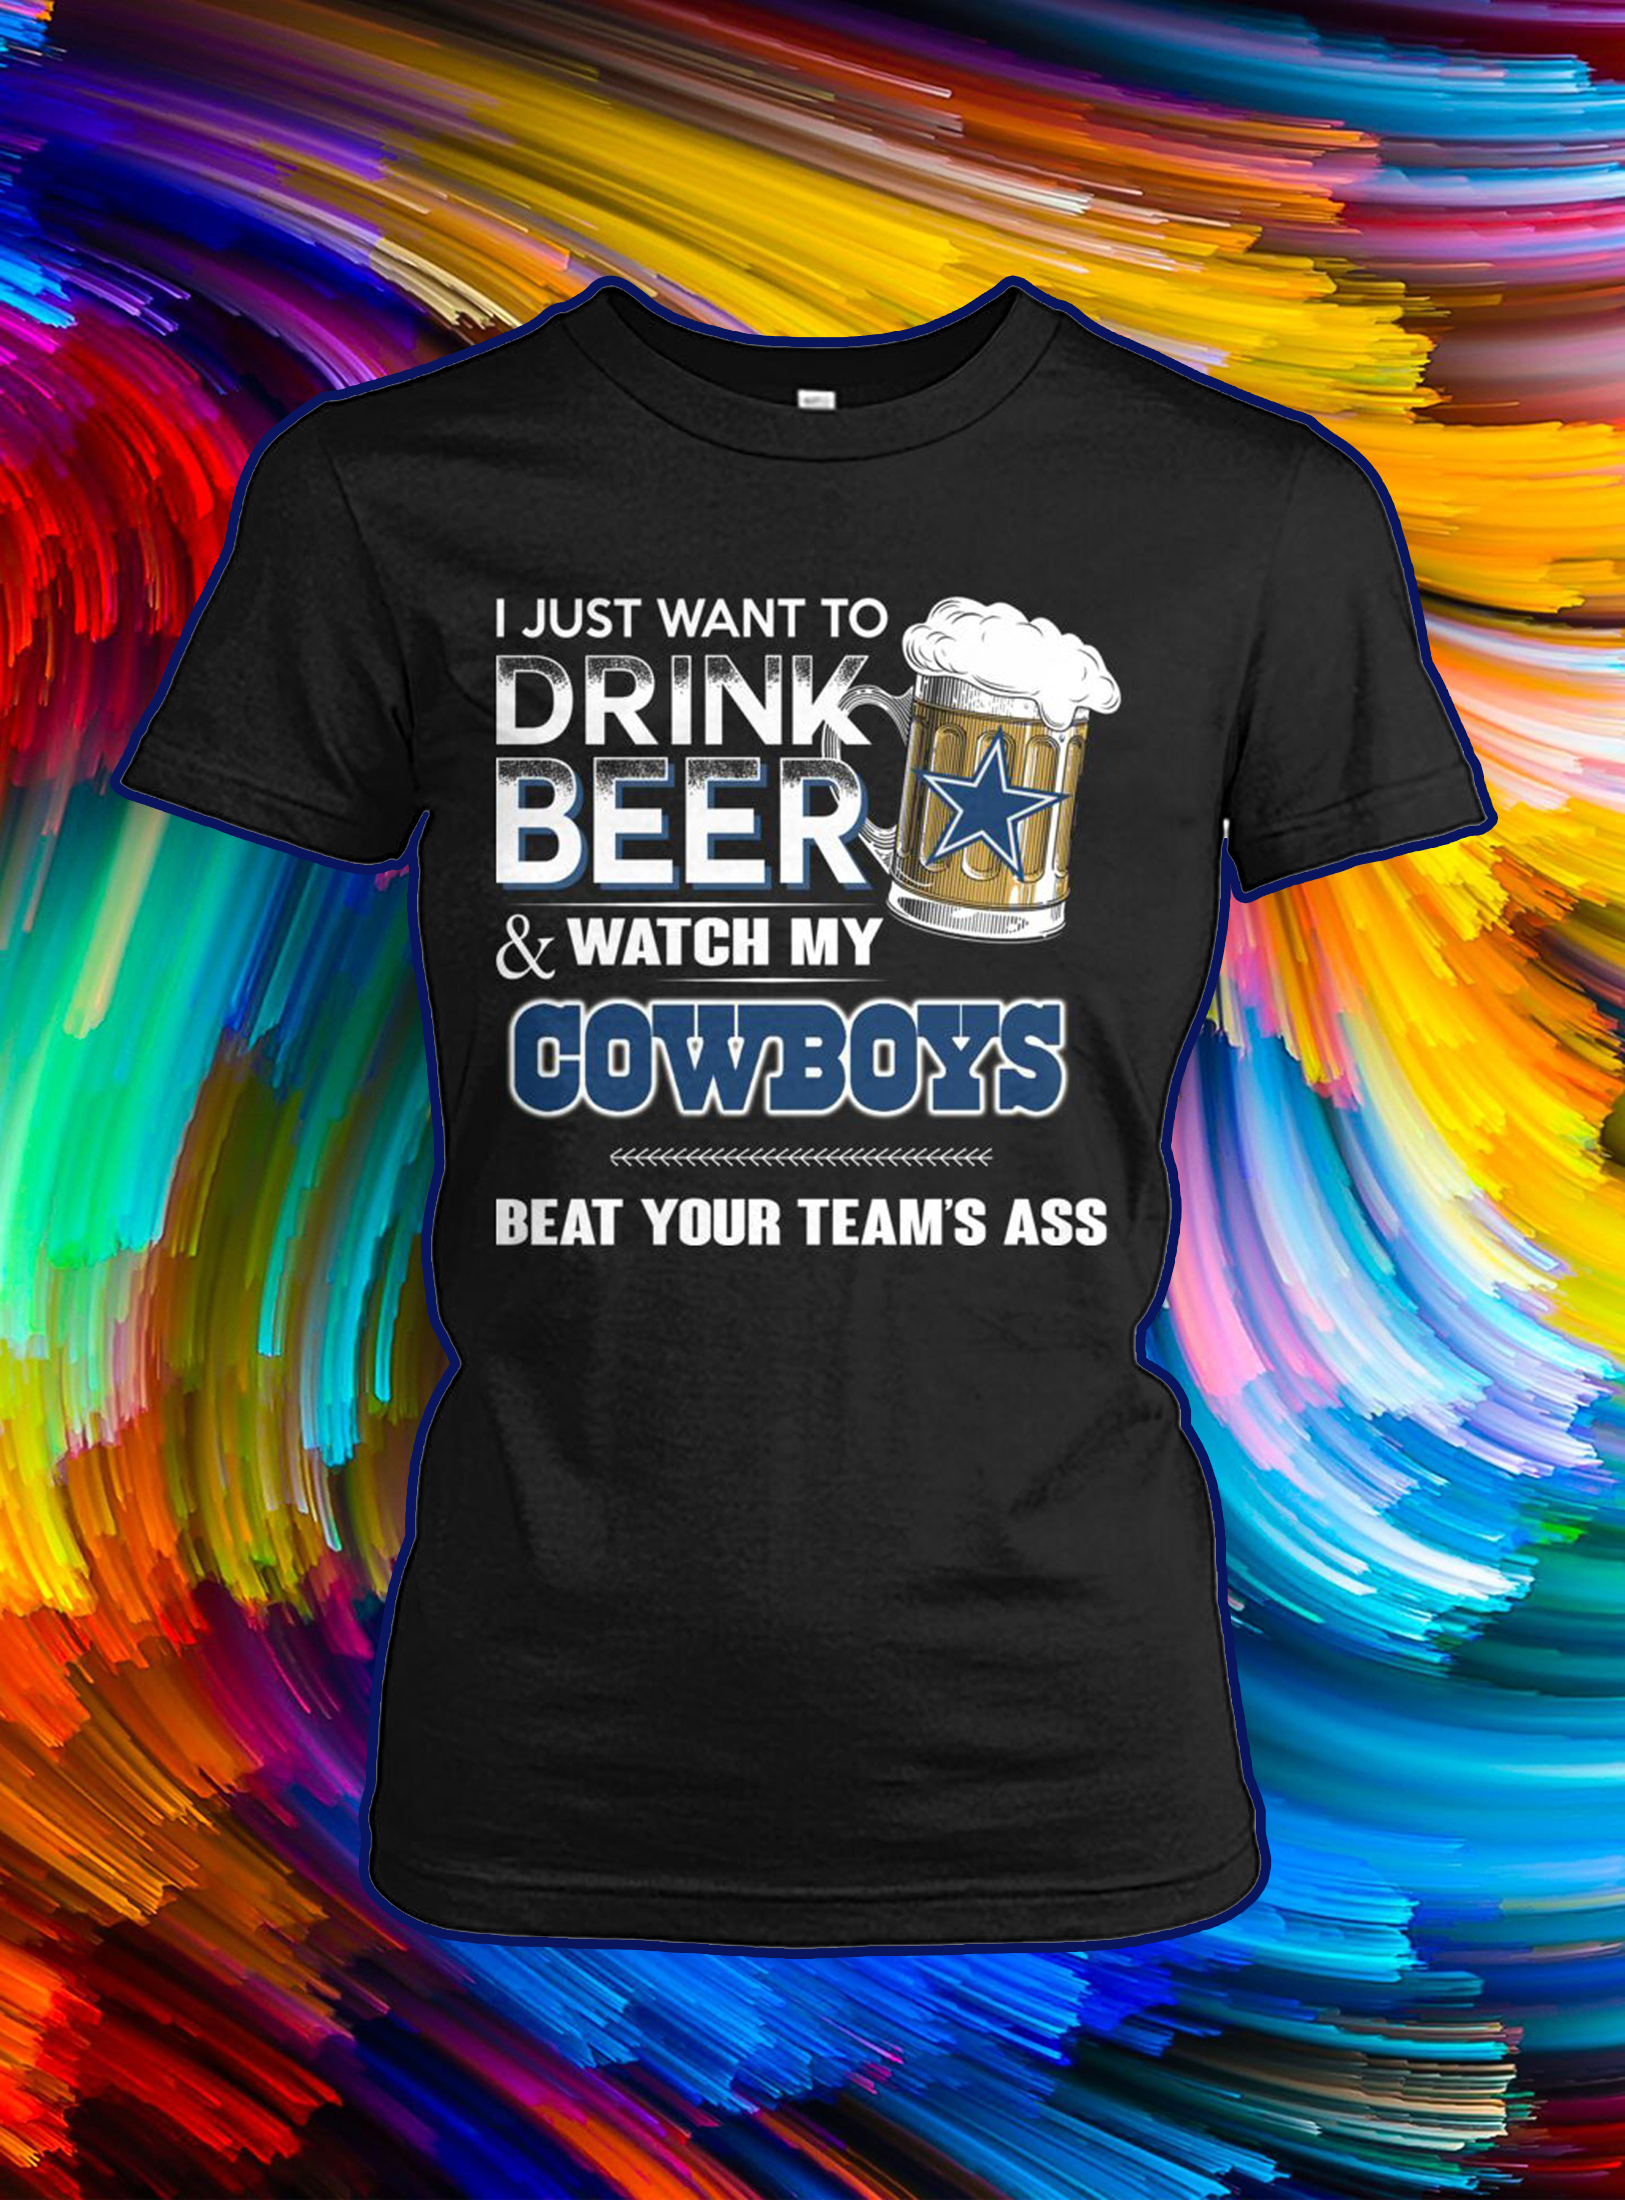 I just want to drink beer and watch my cowboys beat your team's ass lady shirt